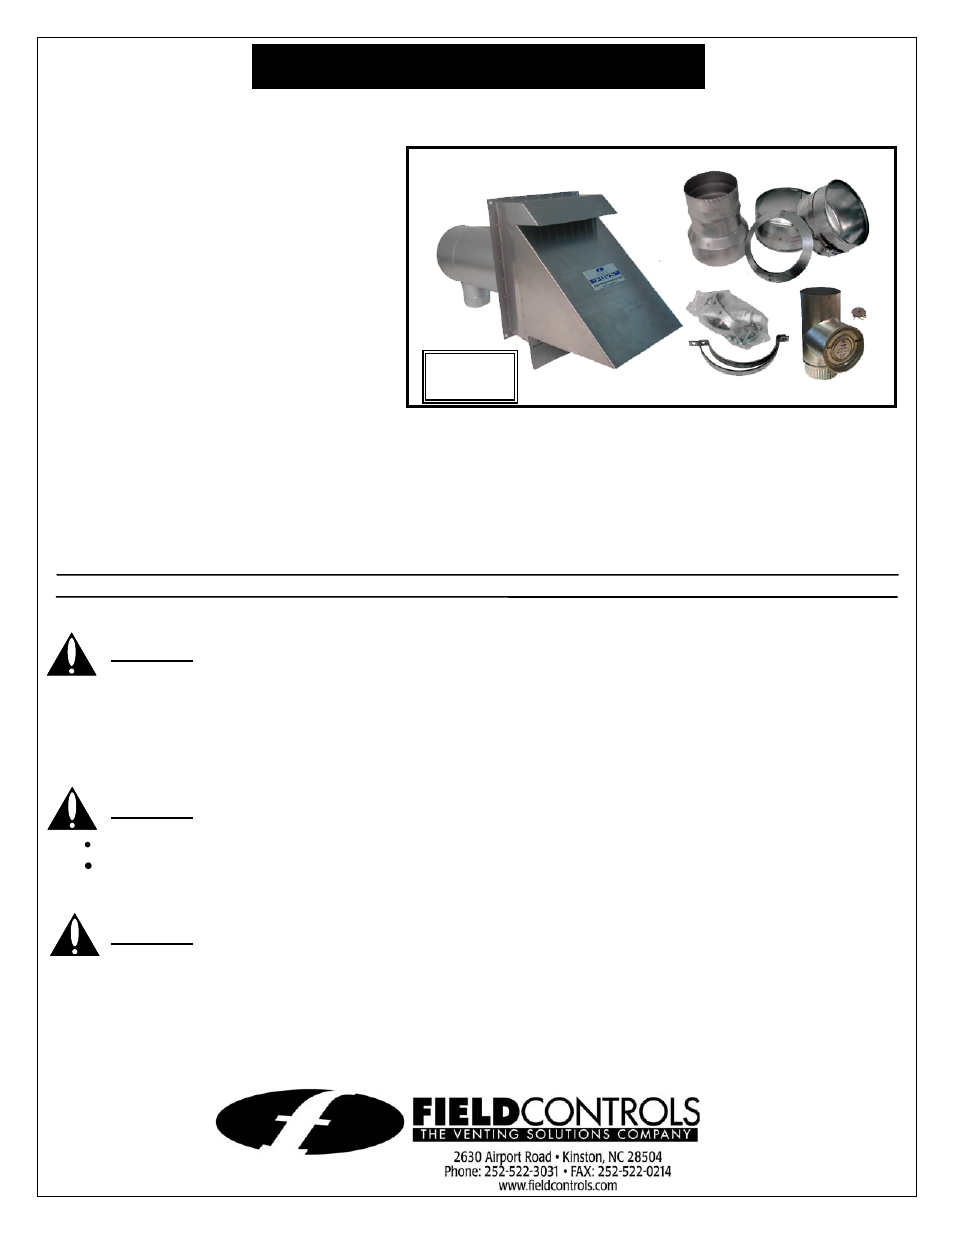 Vent System Field Controls Field Direct Vent System Fdvs User Manual 4 Pages